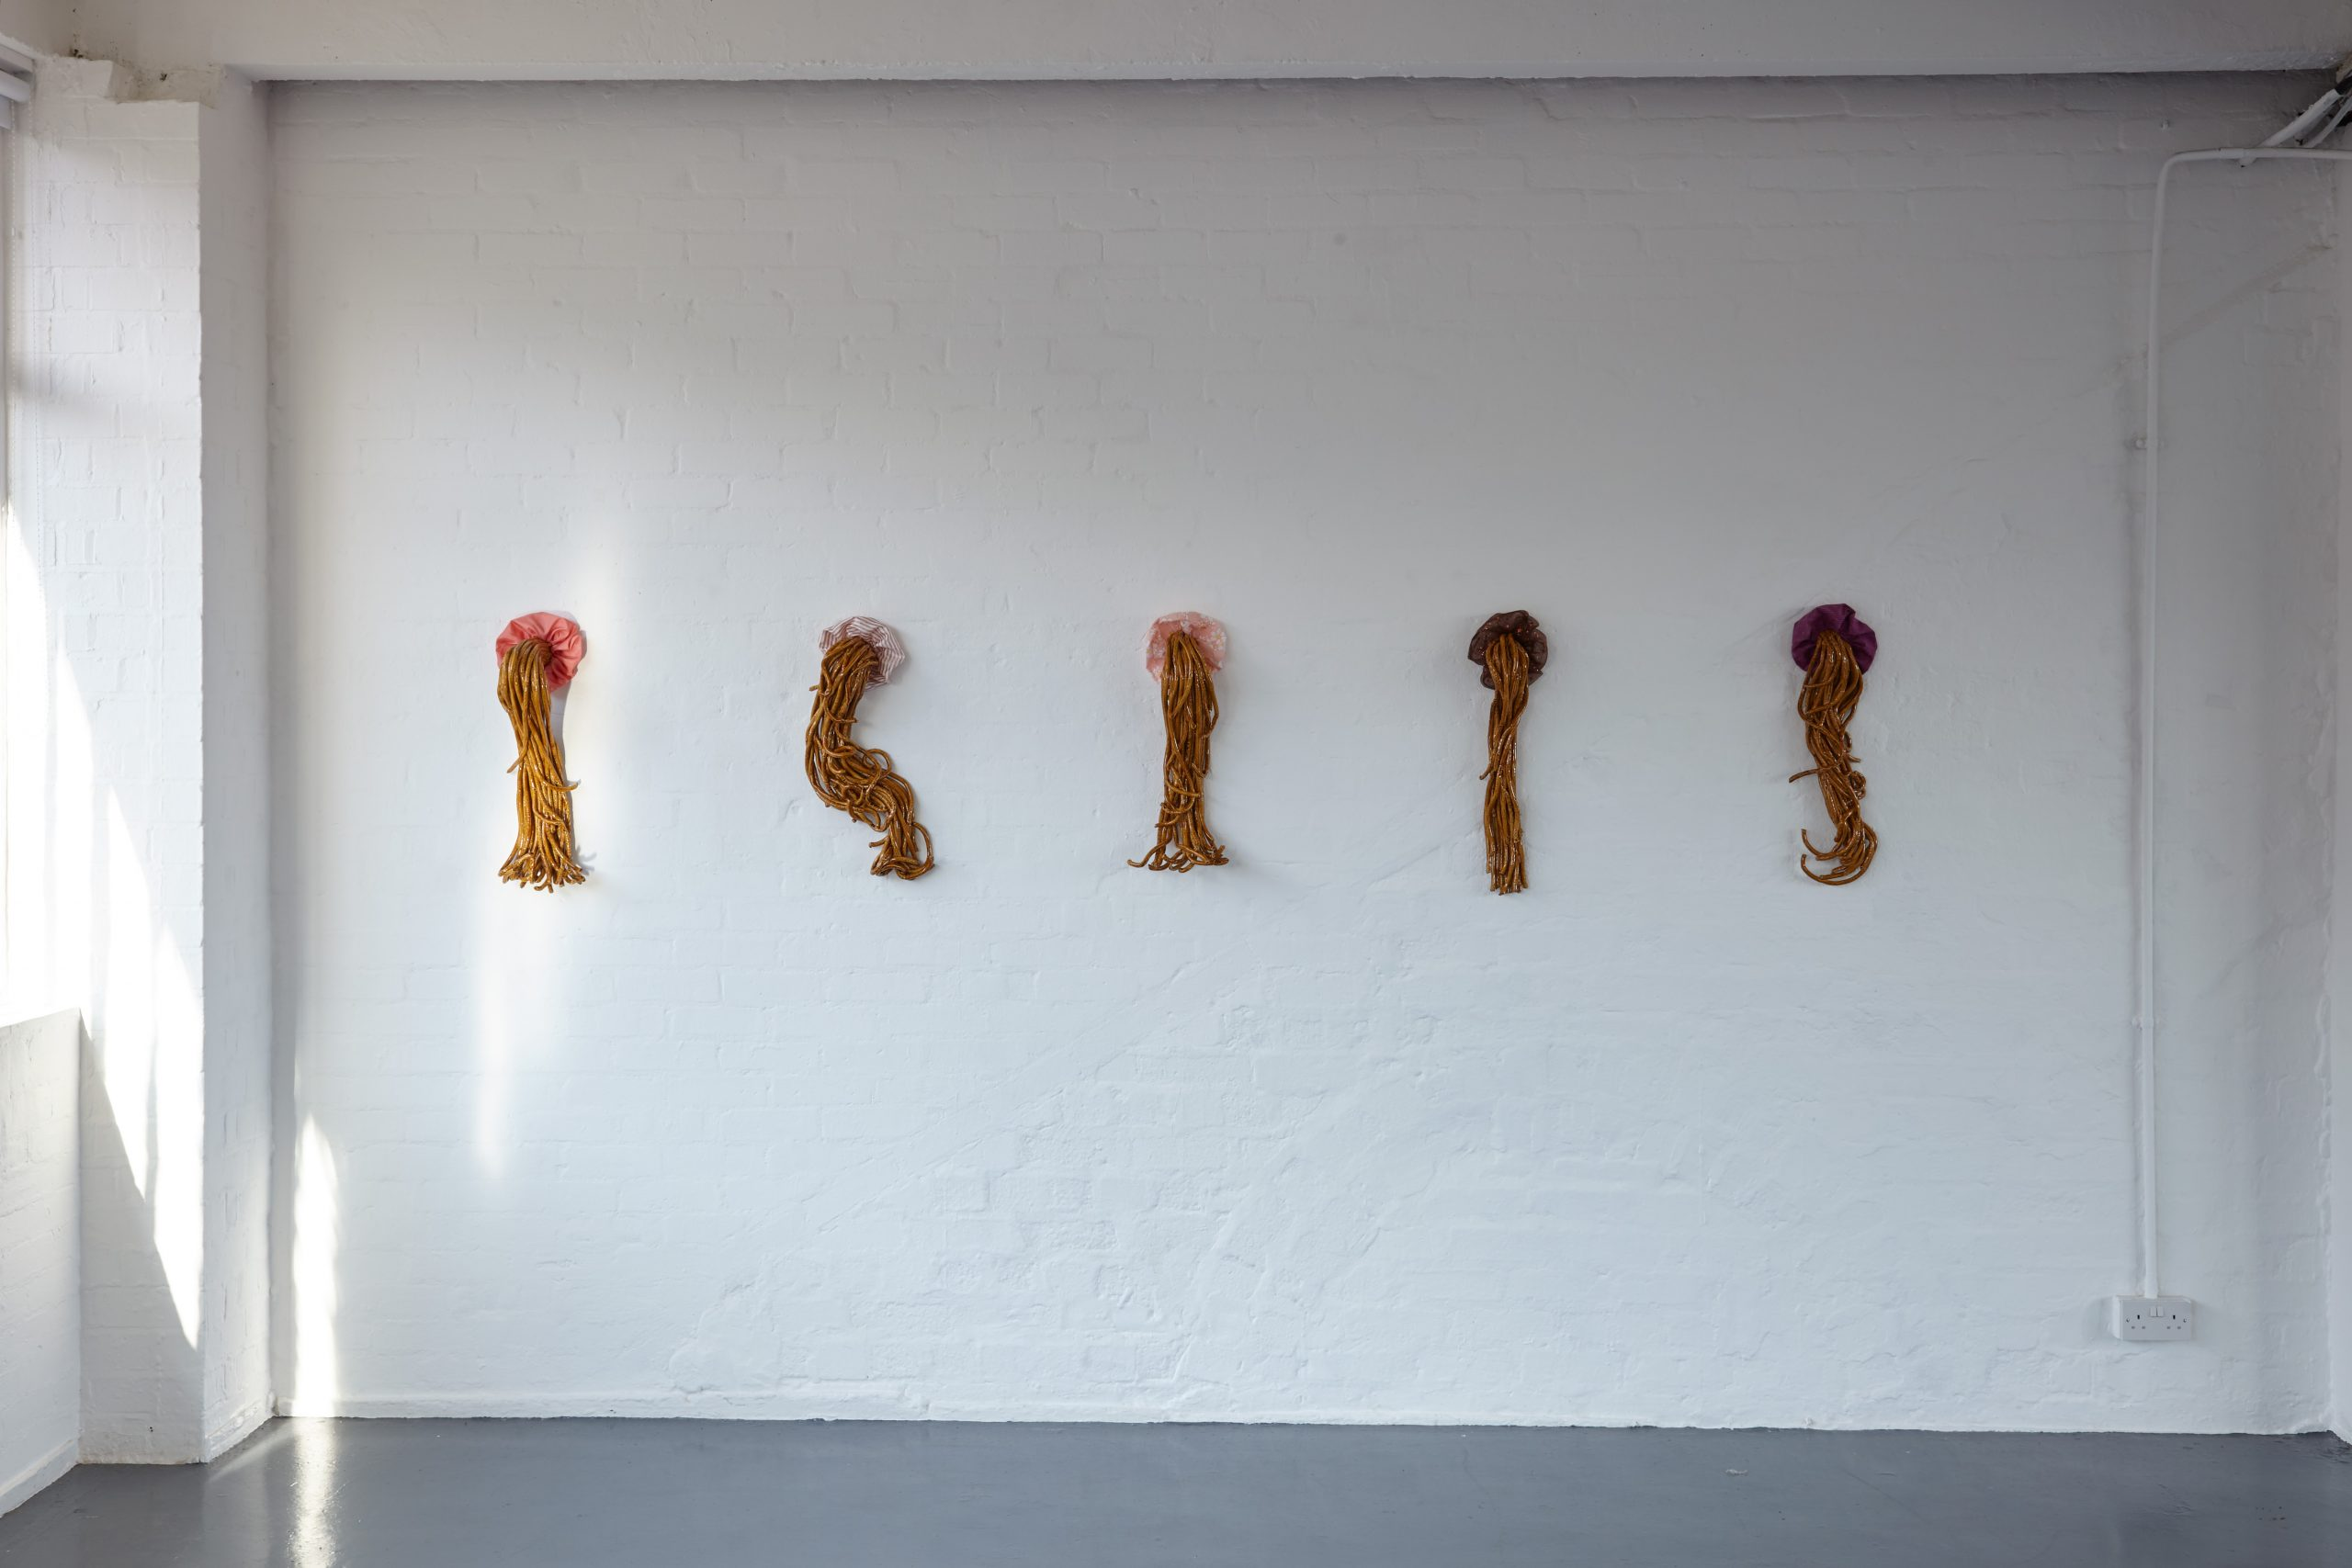 Ceramic ponytails with scrunchies hung on white wall.